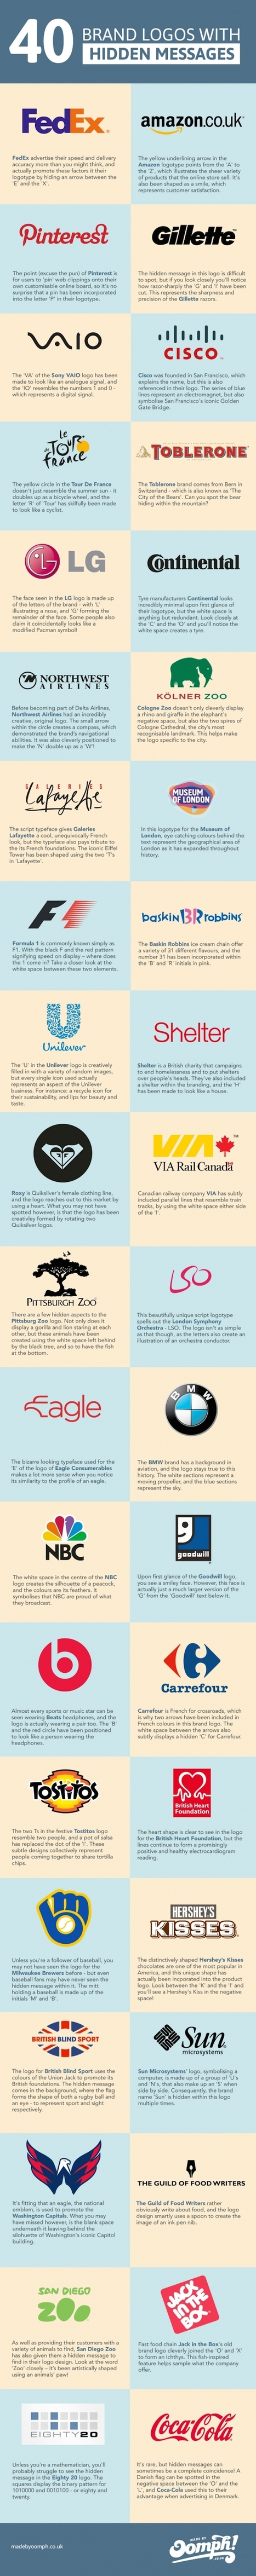 There Are Hidden Messages in These 40 Famous Logos: How Many Can You Find? [Infographic] | Meetings, Tourism and  Technology | Scoop.it